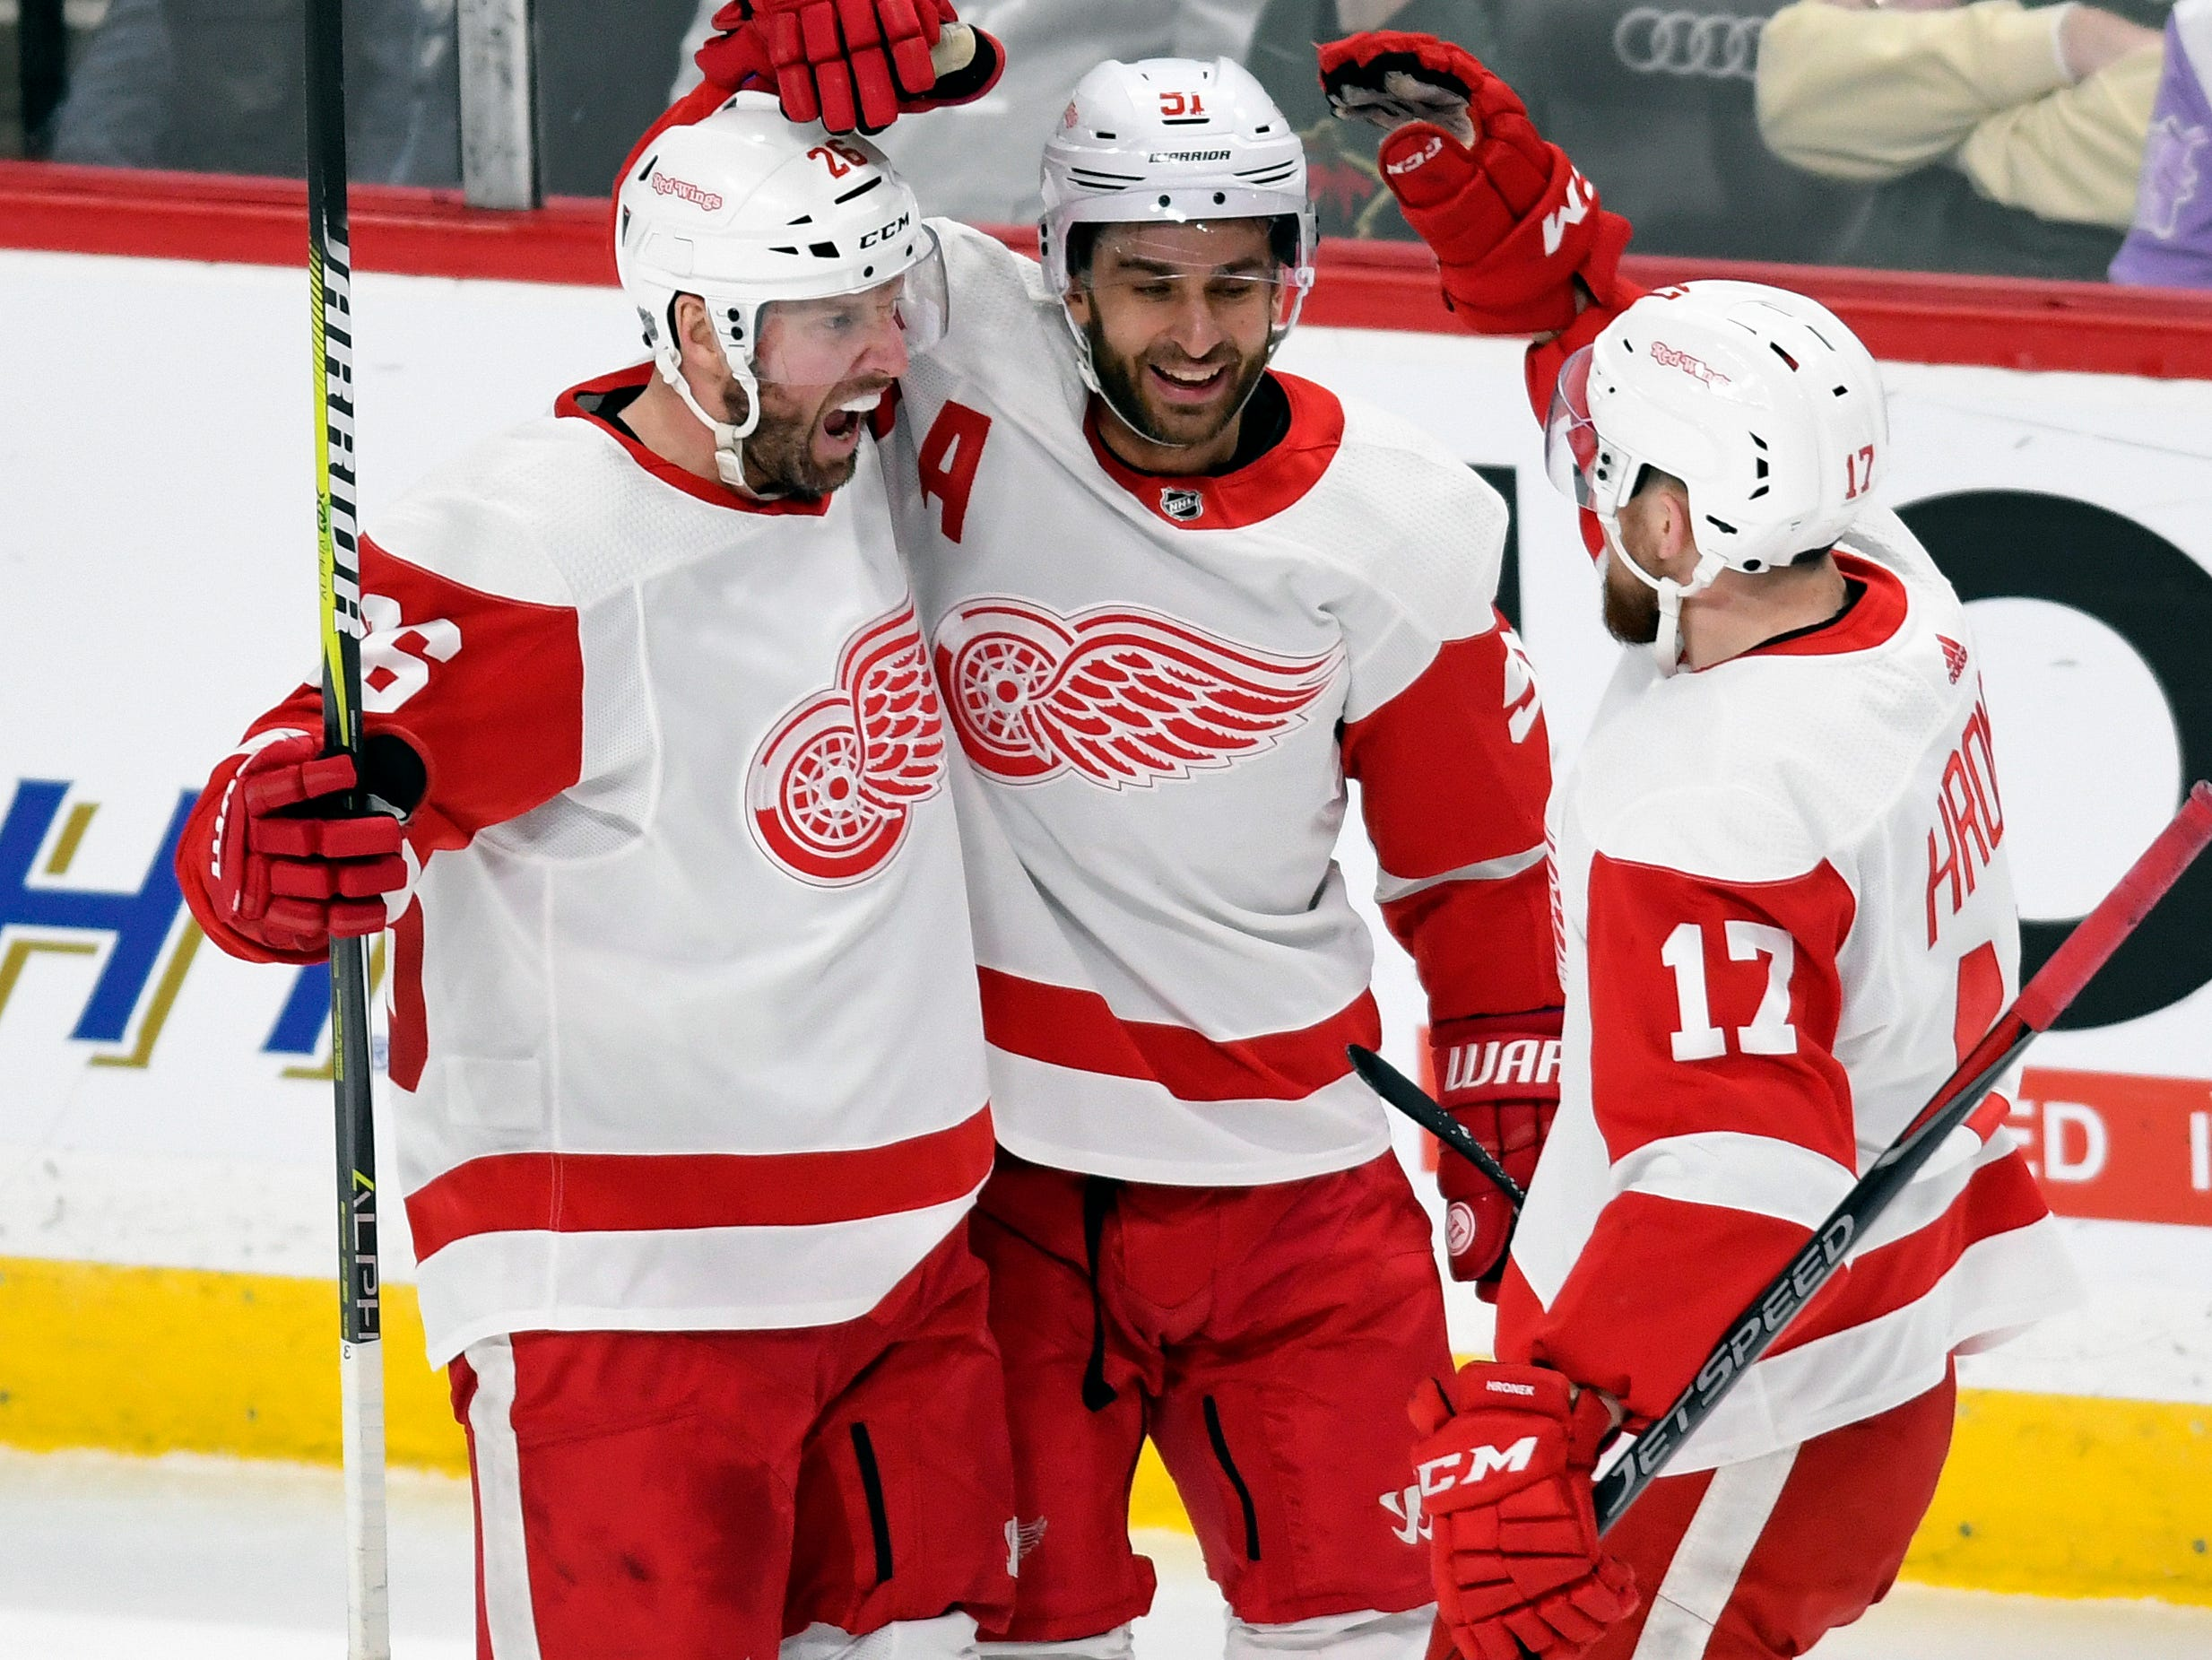 Detroit Red Wings' Frans Nielsen, center, of Denmark, and Filip Hronek (17), of the Czech Republic, congratulate Thomas Vanek, left, of Austria, after he scored a goal against the Minnesota Wild during the second period of an NHL hockey game Saturday, Jan. 12, 2019, in St. Paul, Minn. (AP Photo/Tom Olmscheid)